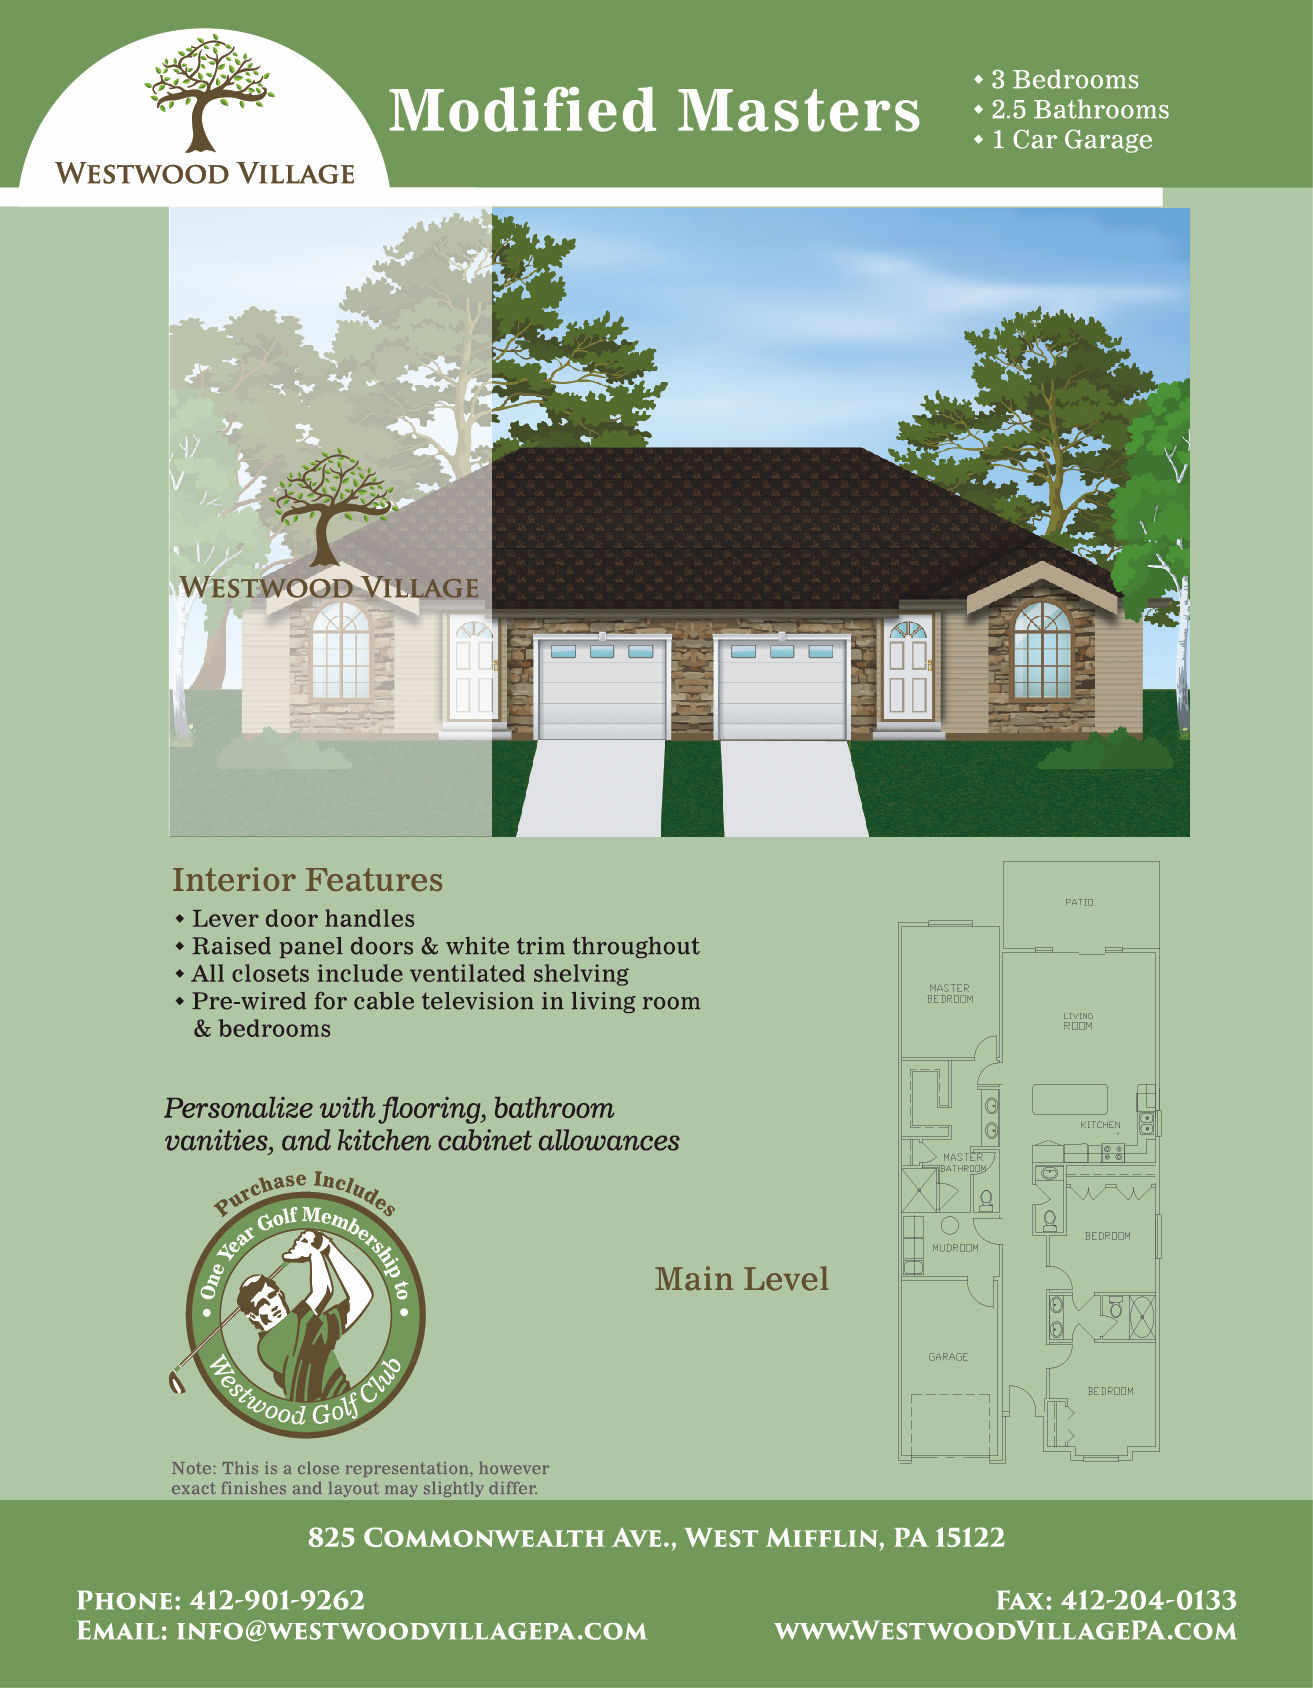 Modified Masters Floorplan